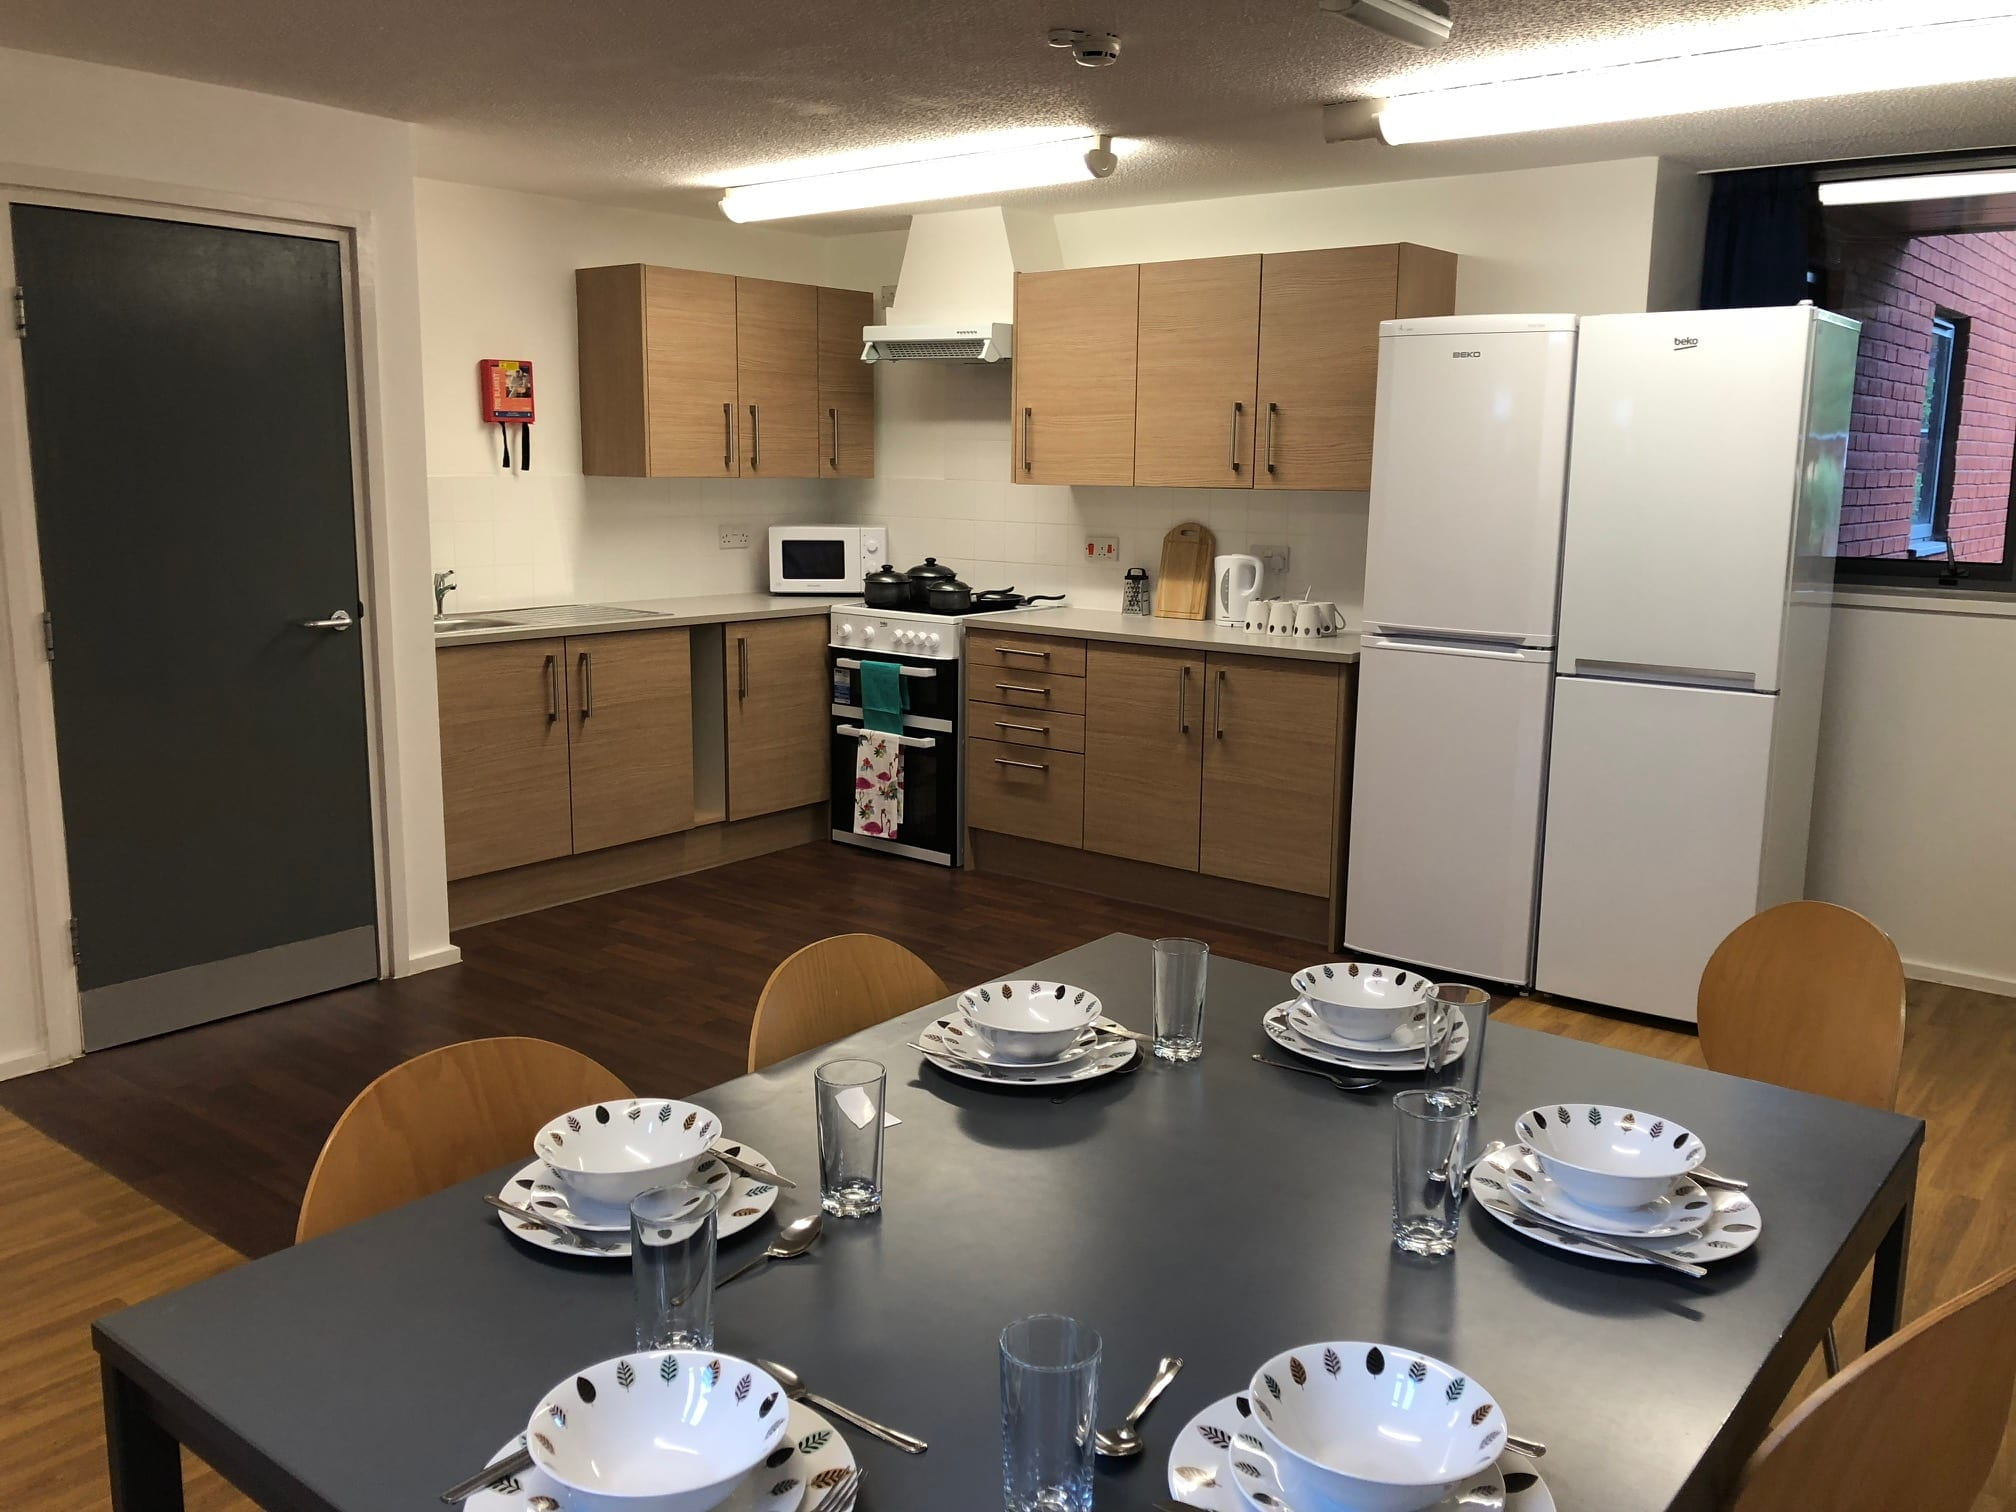 An example Lincoln Courts kitchen showing dining table & chairs, kitchen worktops and cupboards. showing the room dressed with crockery cuttlery and pots and pans (these are not provided & are shown for decorative purposes only).